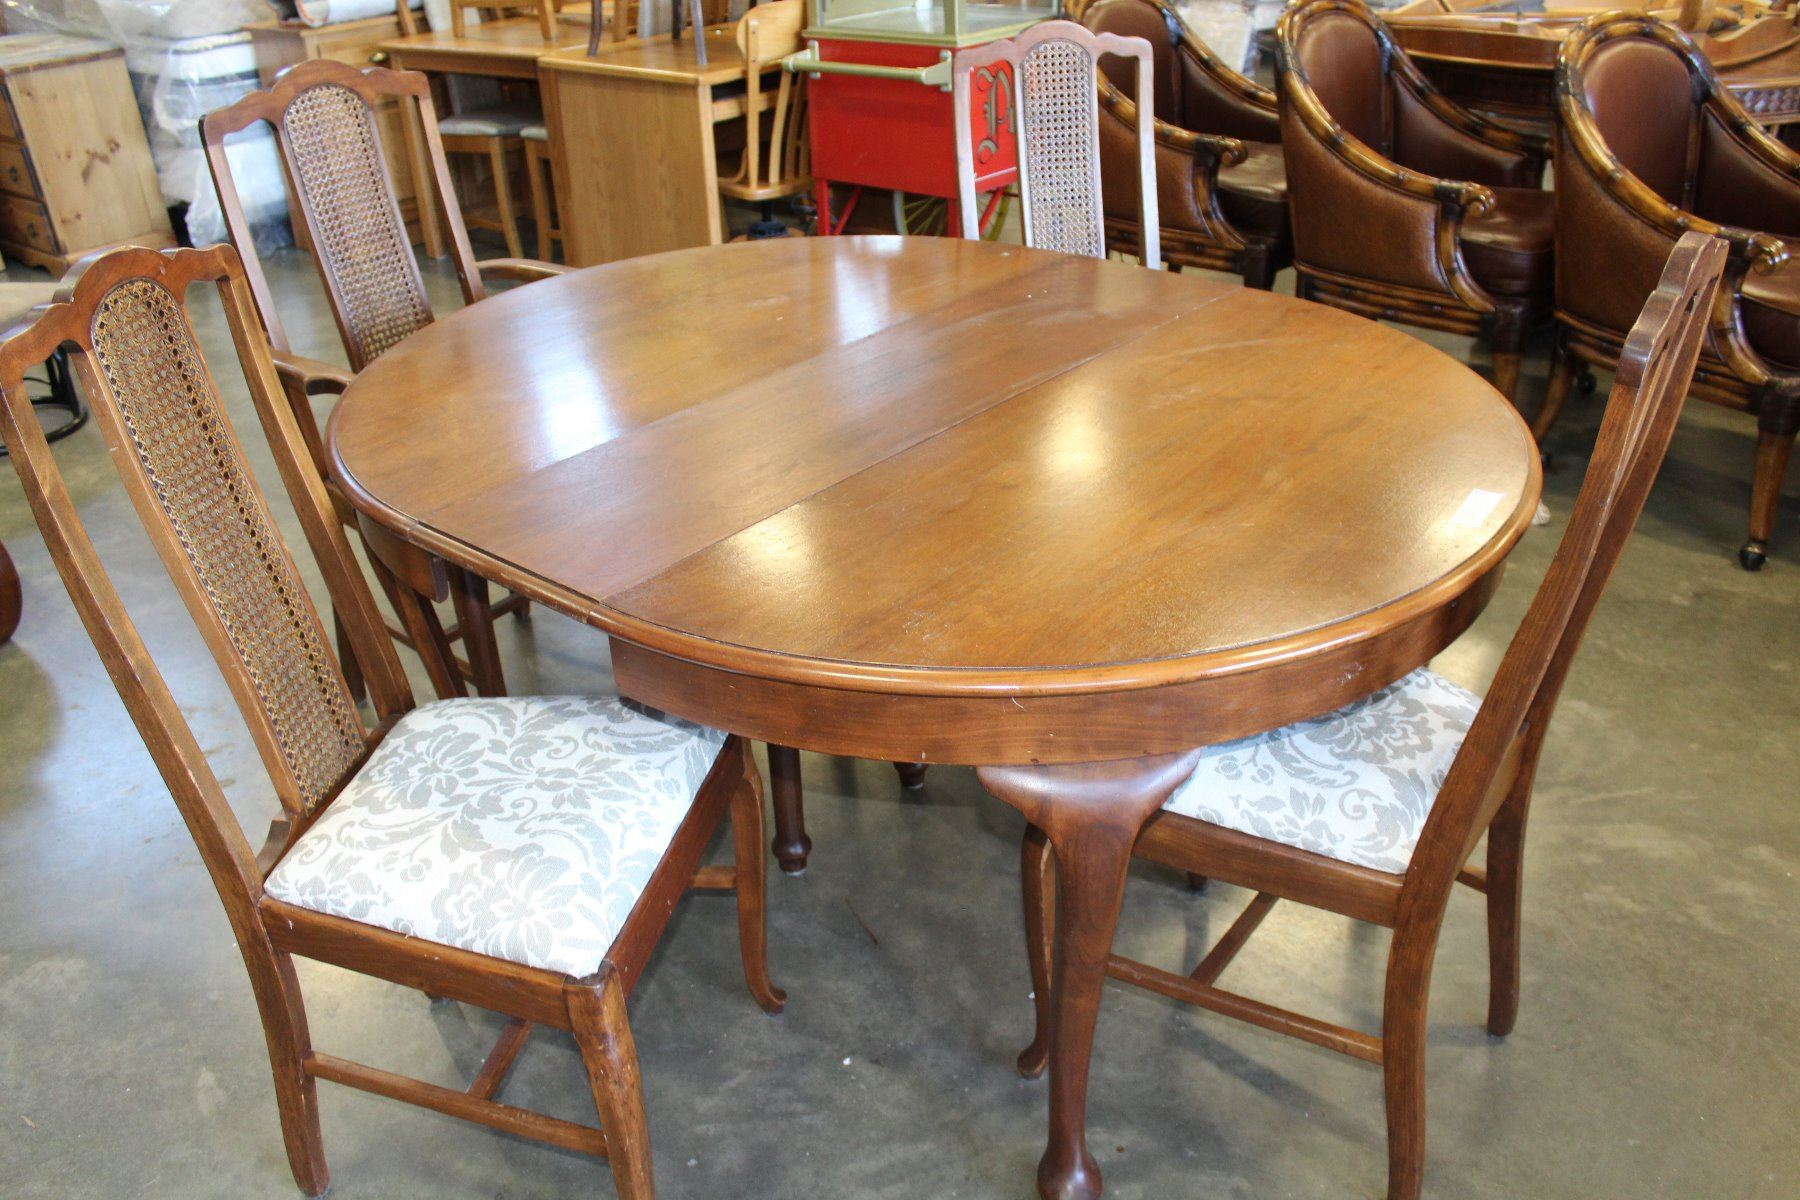 Strange Oak Queen Anne Style Round Dining Table And Four Chairs Download Free Architecture Designs Scobabritishbridgeorg